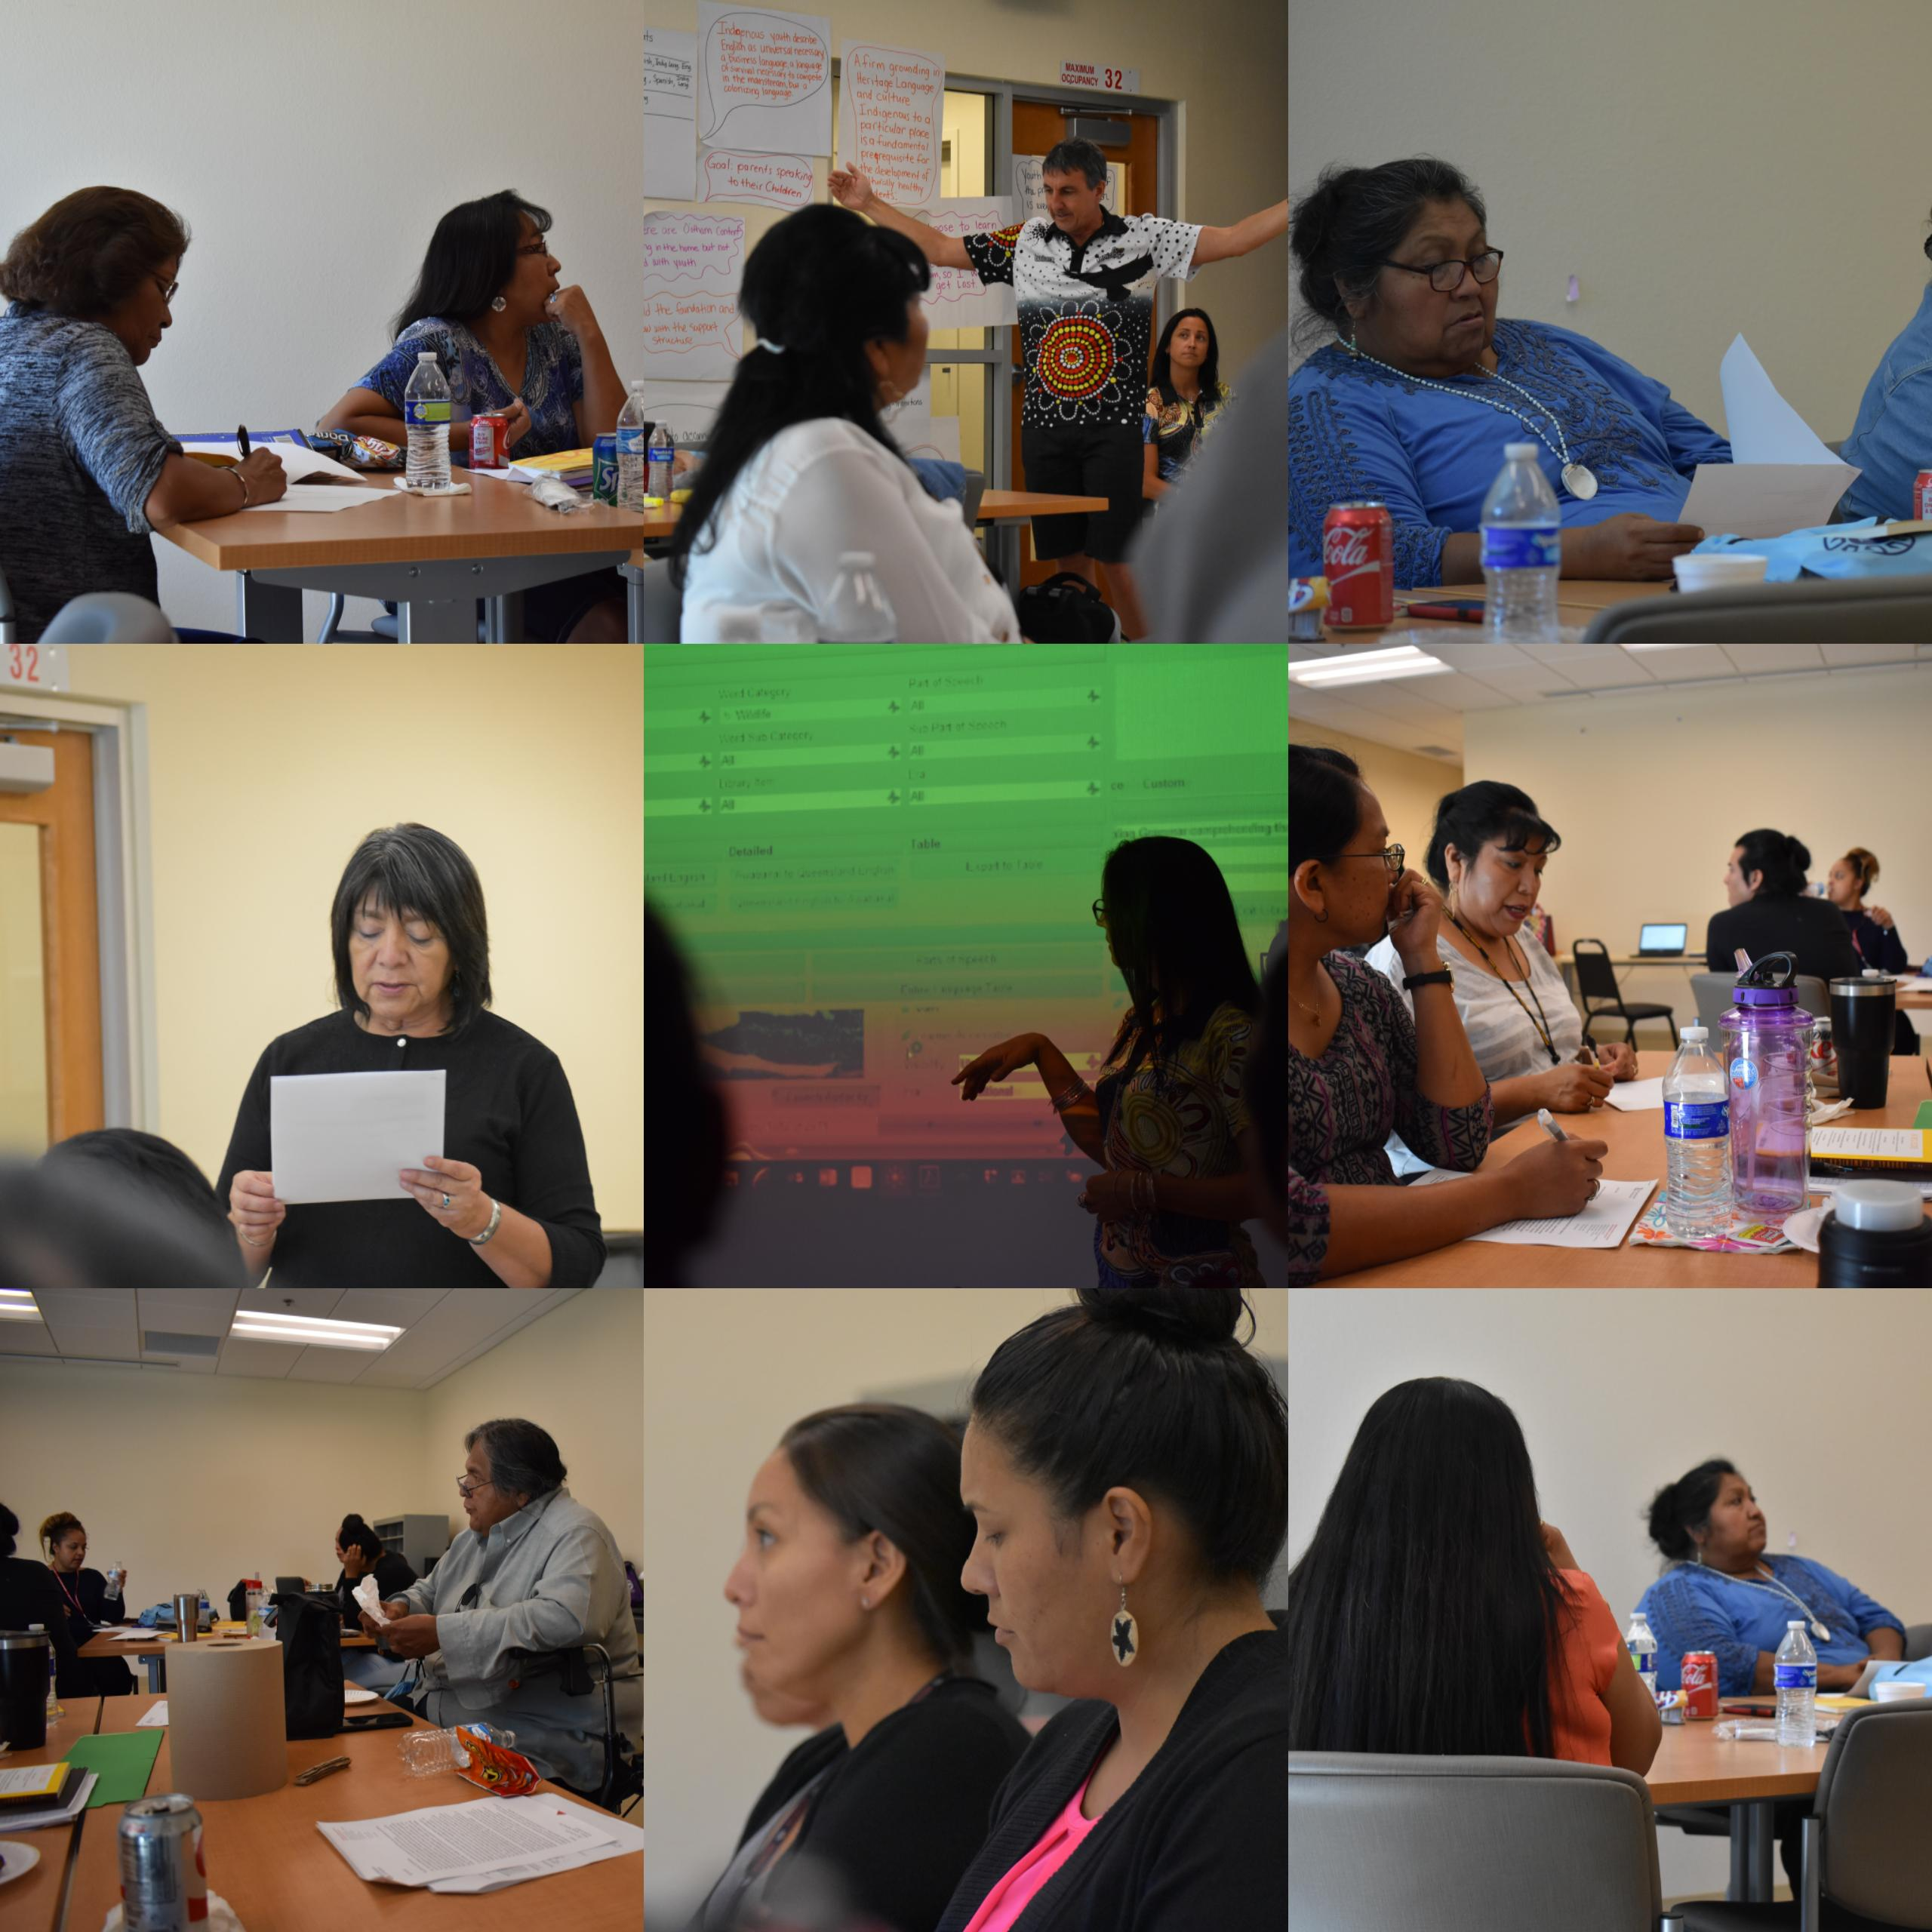 A compilation of images from the classes offered by AILDI